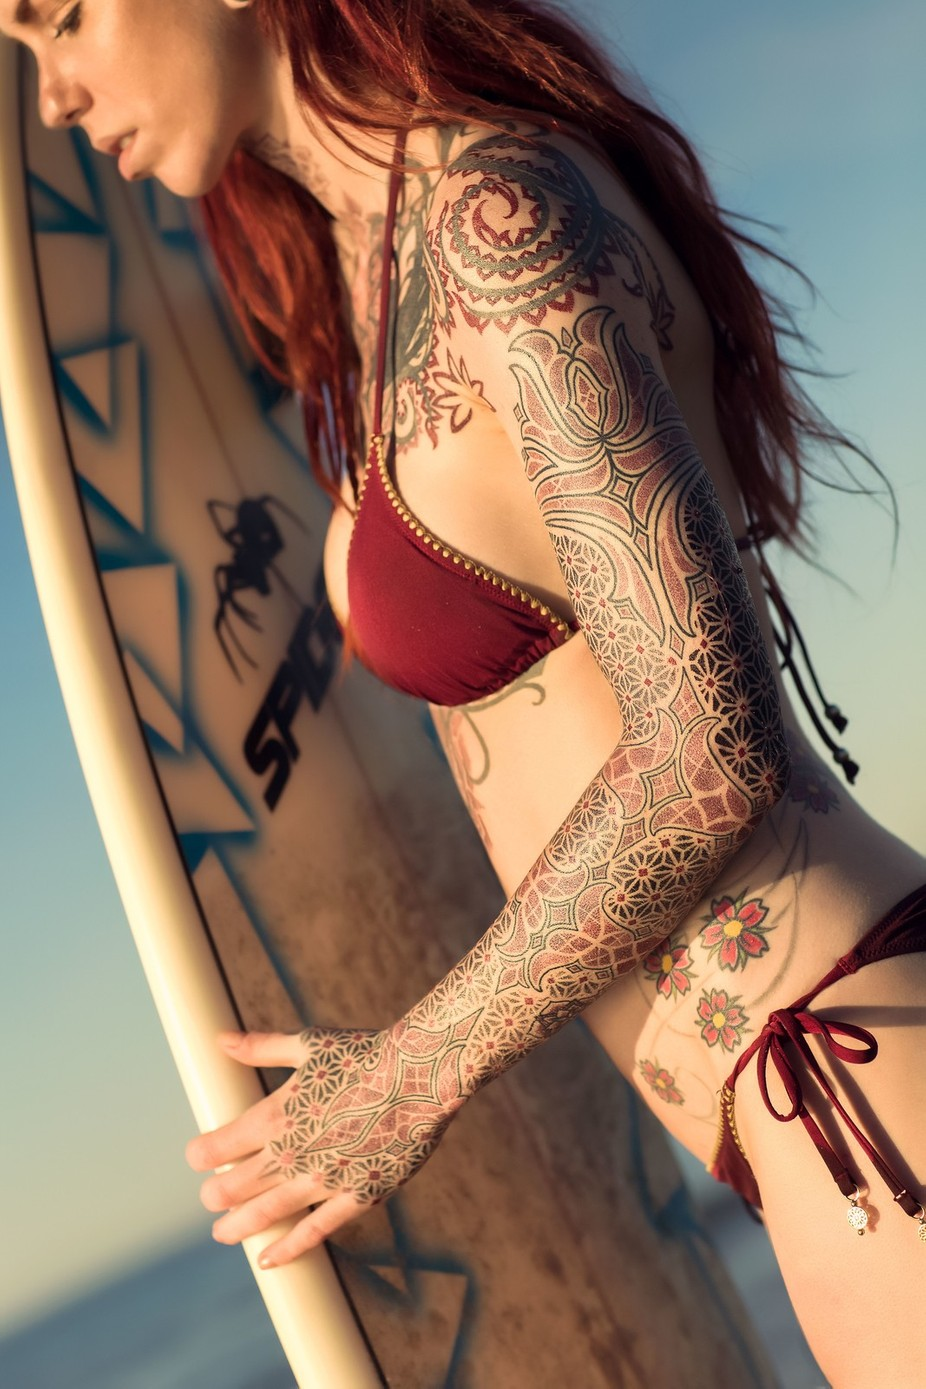 Surfs up! by JackHoier - Wearing A Bikini Photo Contest